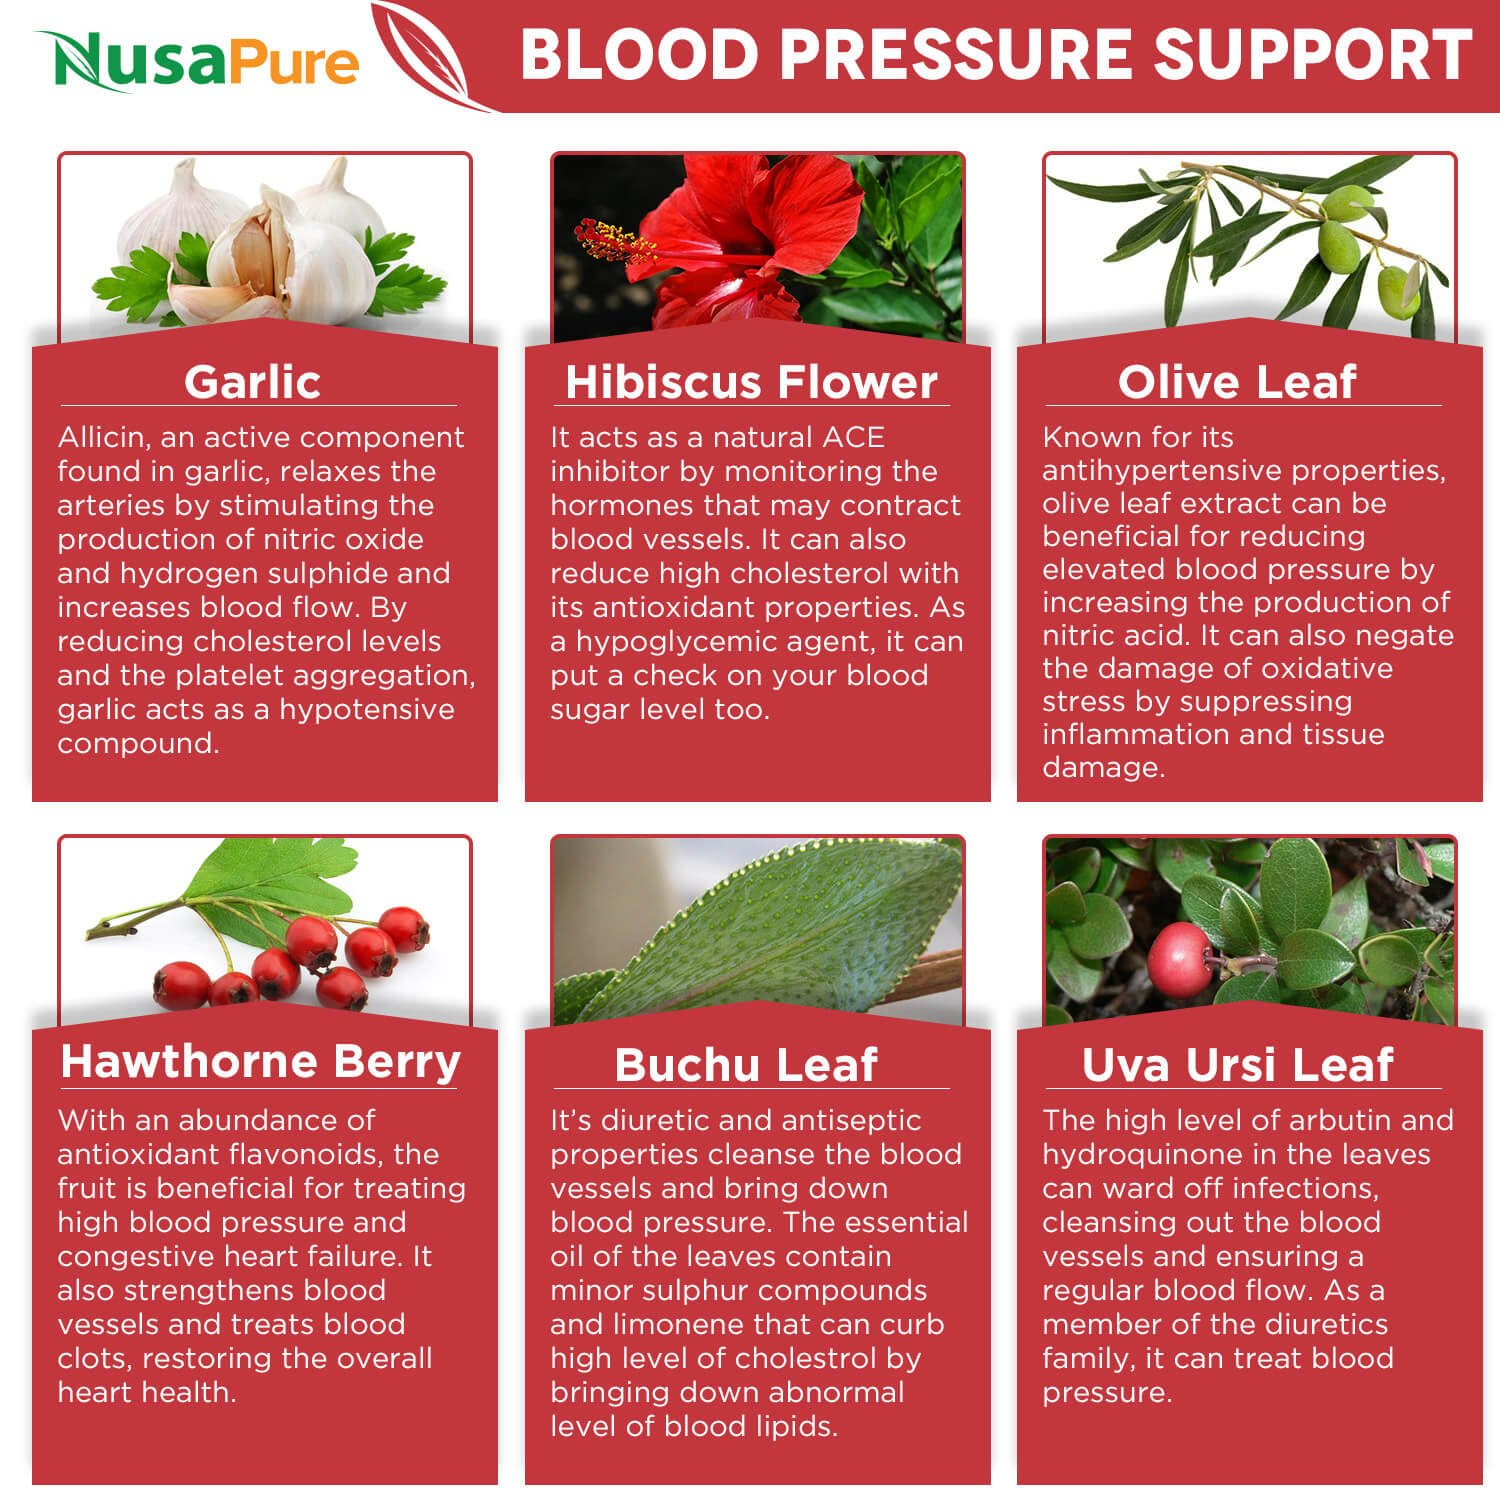 5 Ways You Can Lower High Blood Pressure